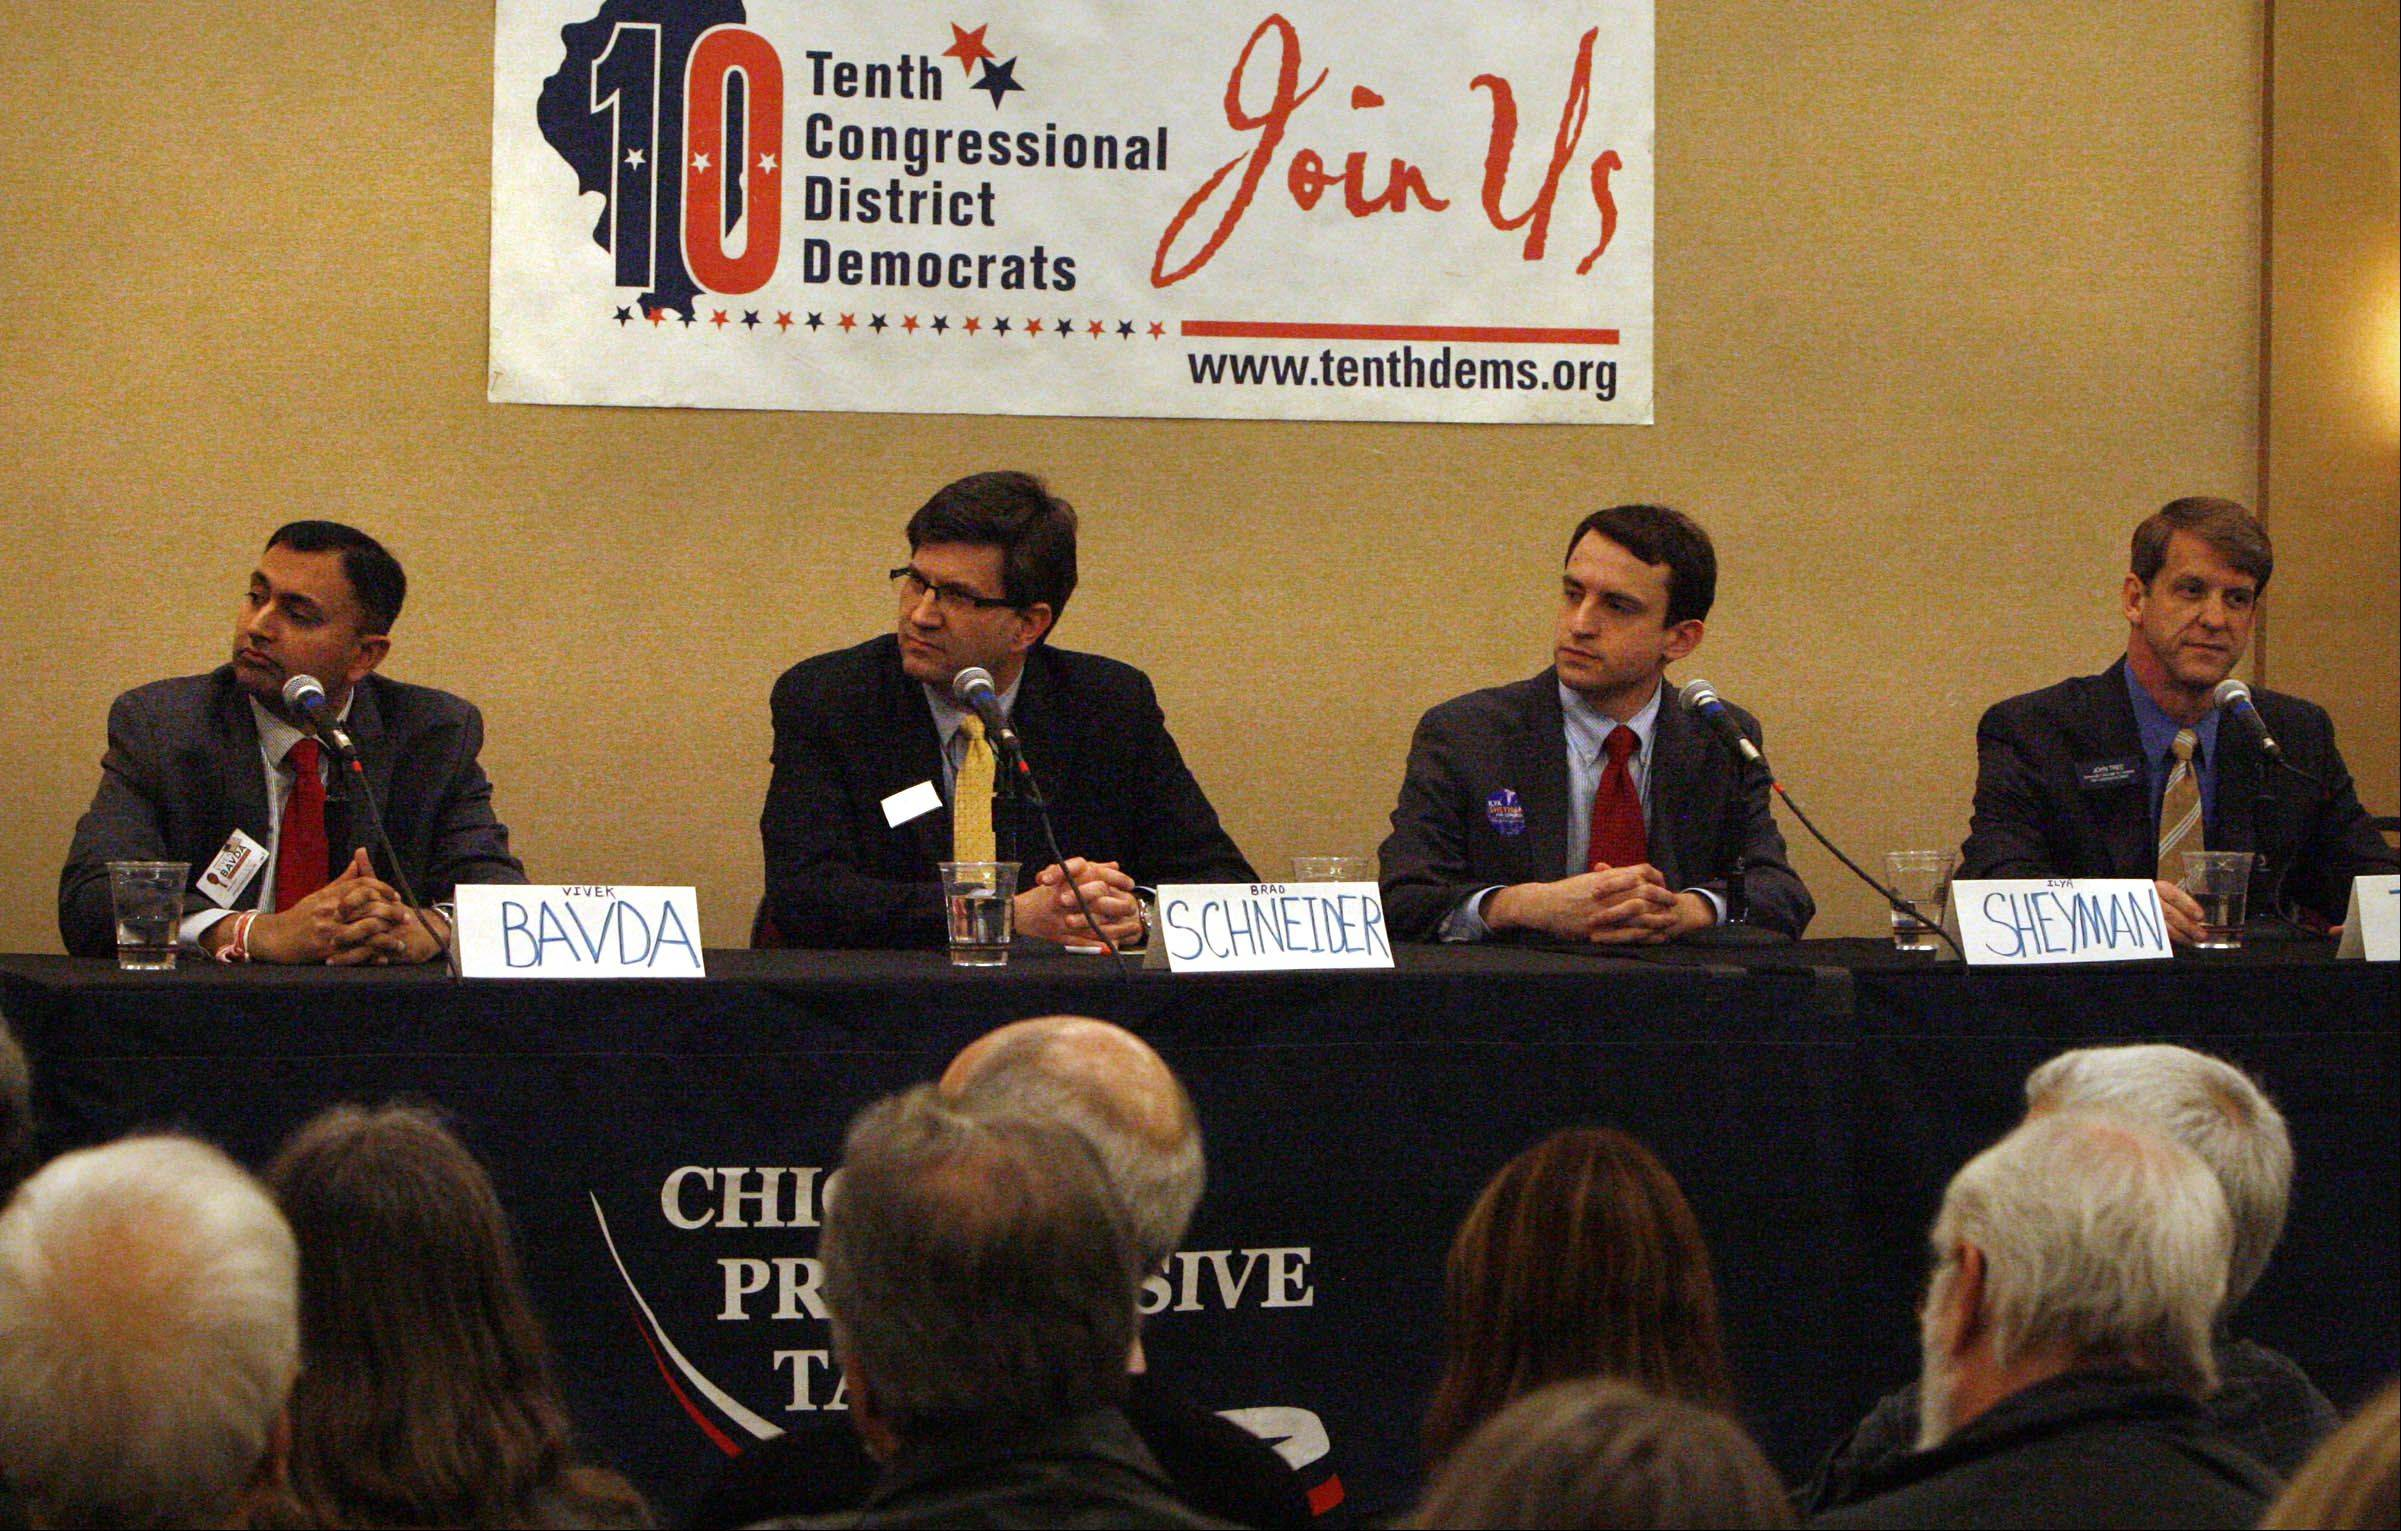 Democratic candidates for the 10th Congressional District, from left Vivek Bavda Brad Schneider, Ilya Sheyman, and John Tree answer questions presented by WCPT radio host Dick Kay at a live forum Saturday at the Hyatt Deerfield.